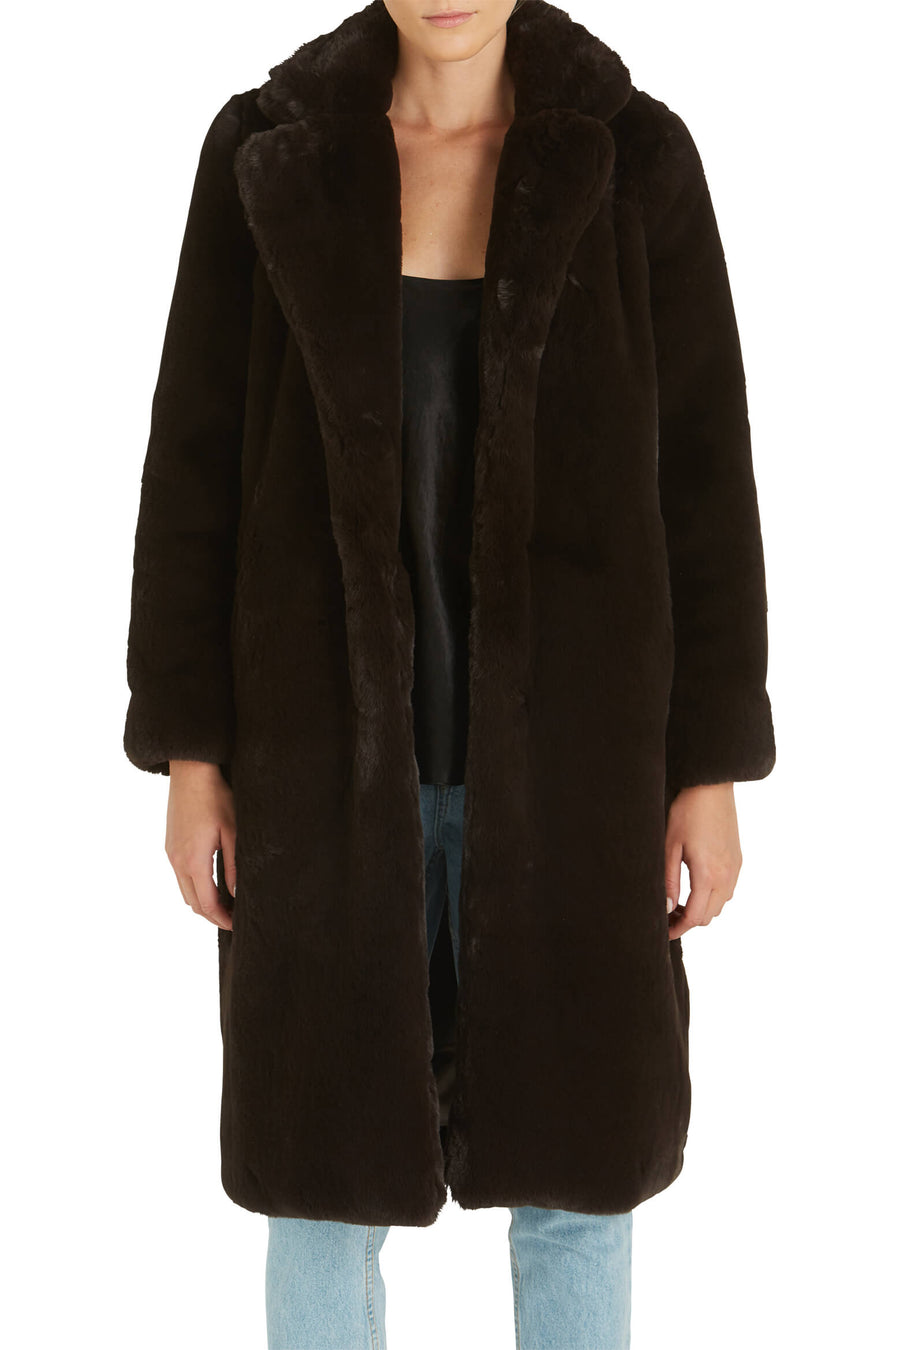 Apparis Siena Faux Fur Coat in Eboni from The New Trend